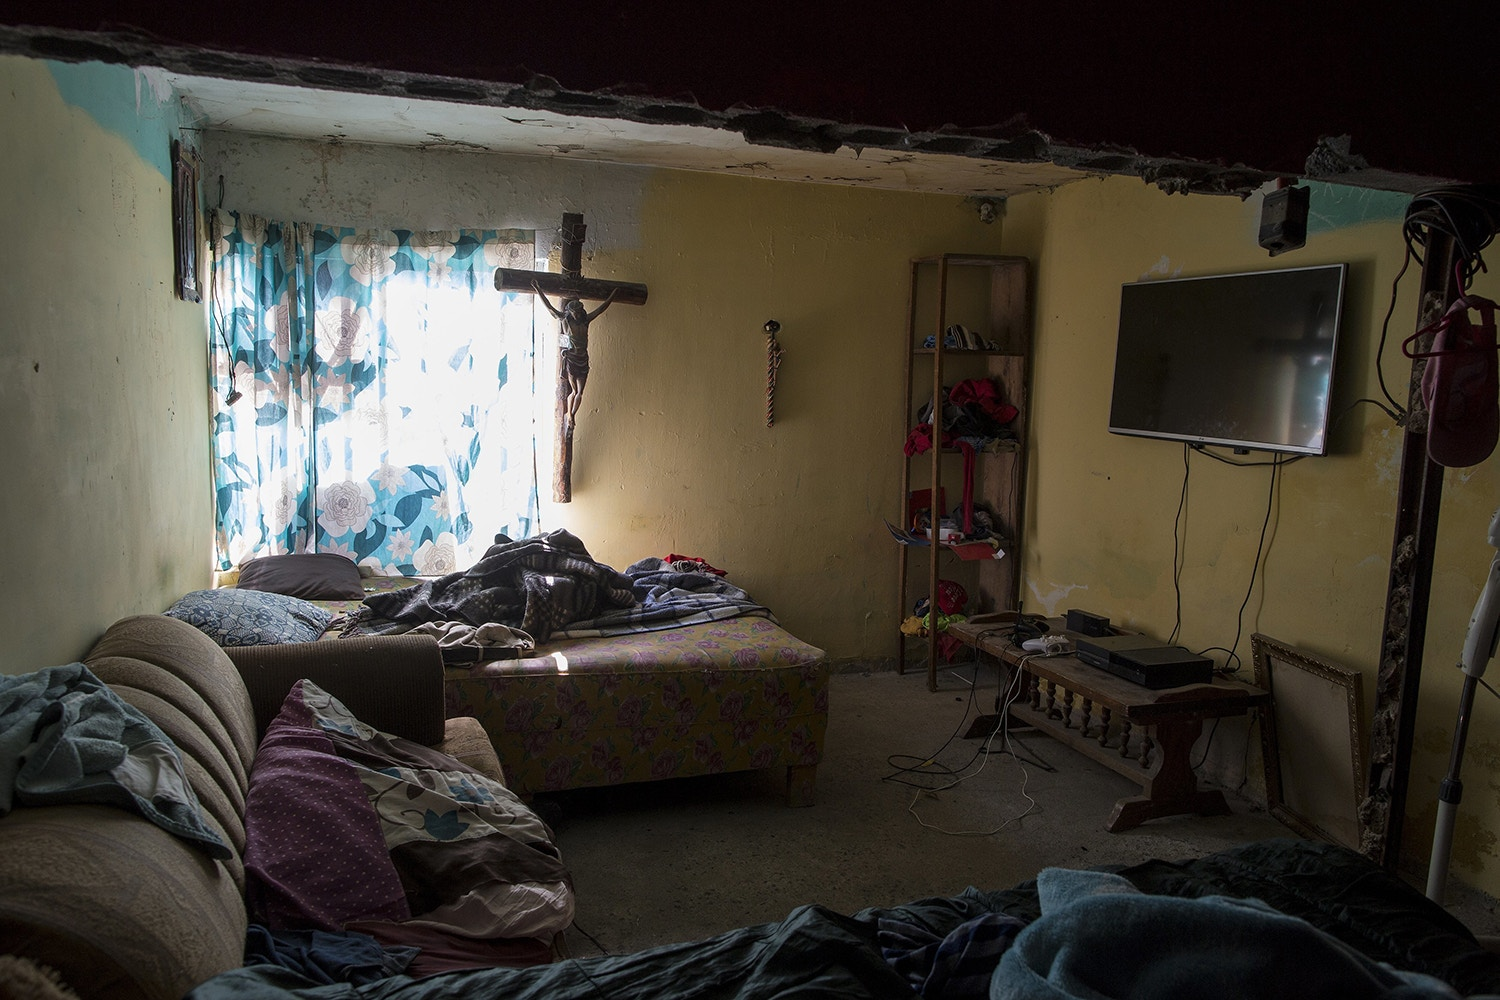 The home of Jesus Esteban Cruz in Reynosa, Mexico, Wednesday, March 22, 2017, across the border from McAllen, Texas. Cruz's 20-yar-old daughter Paula says she's going to write a book someday about her single mother who moved to Reynosa and raised three kids who stayed out of trouble despite the turmoil that swirled around them. (AP Photo/Rodrigo Abd)